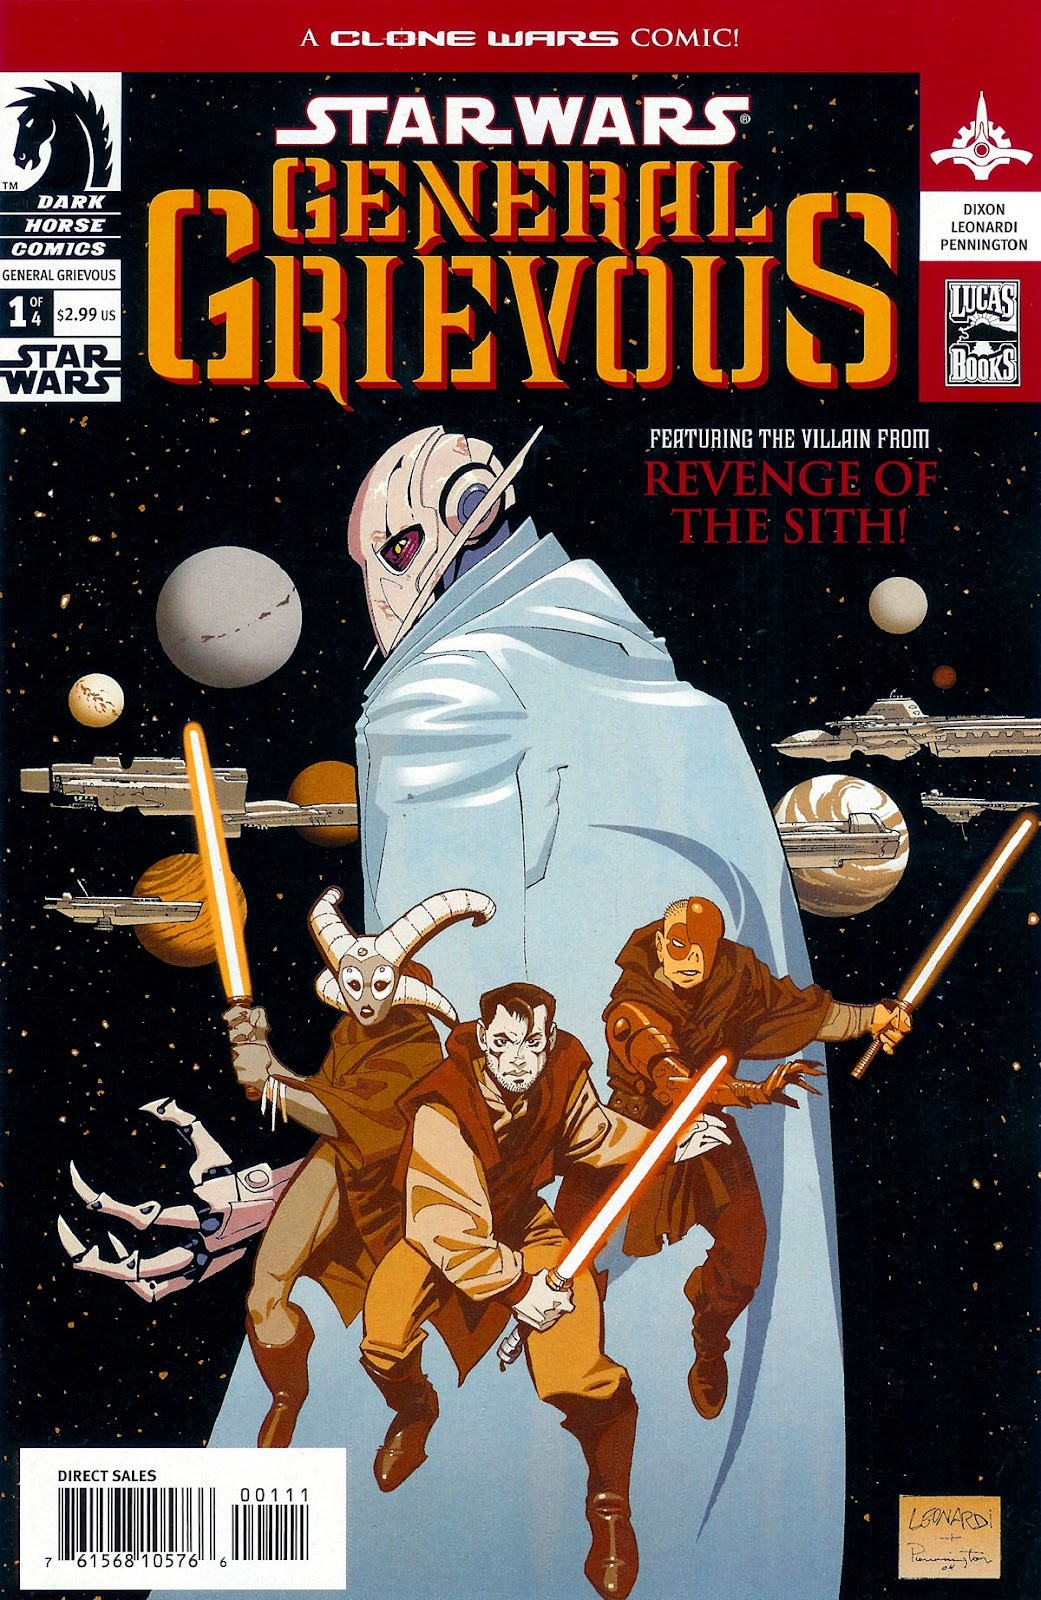 star wars general grievous issue 1 read full comics online for free